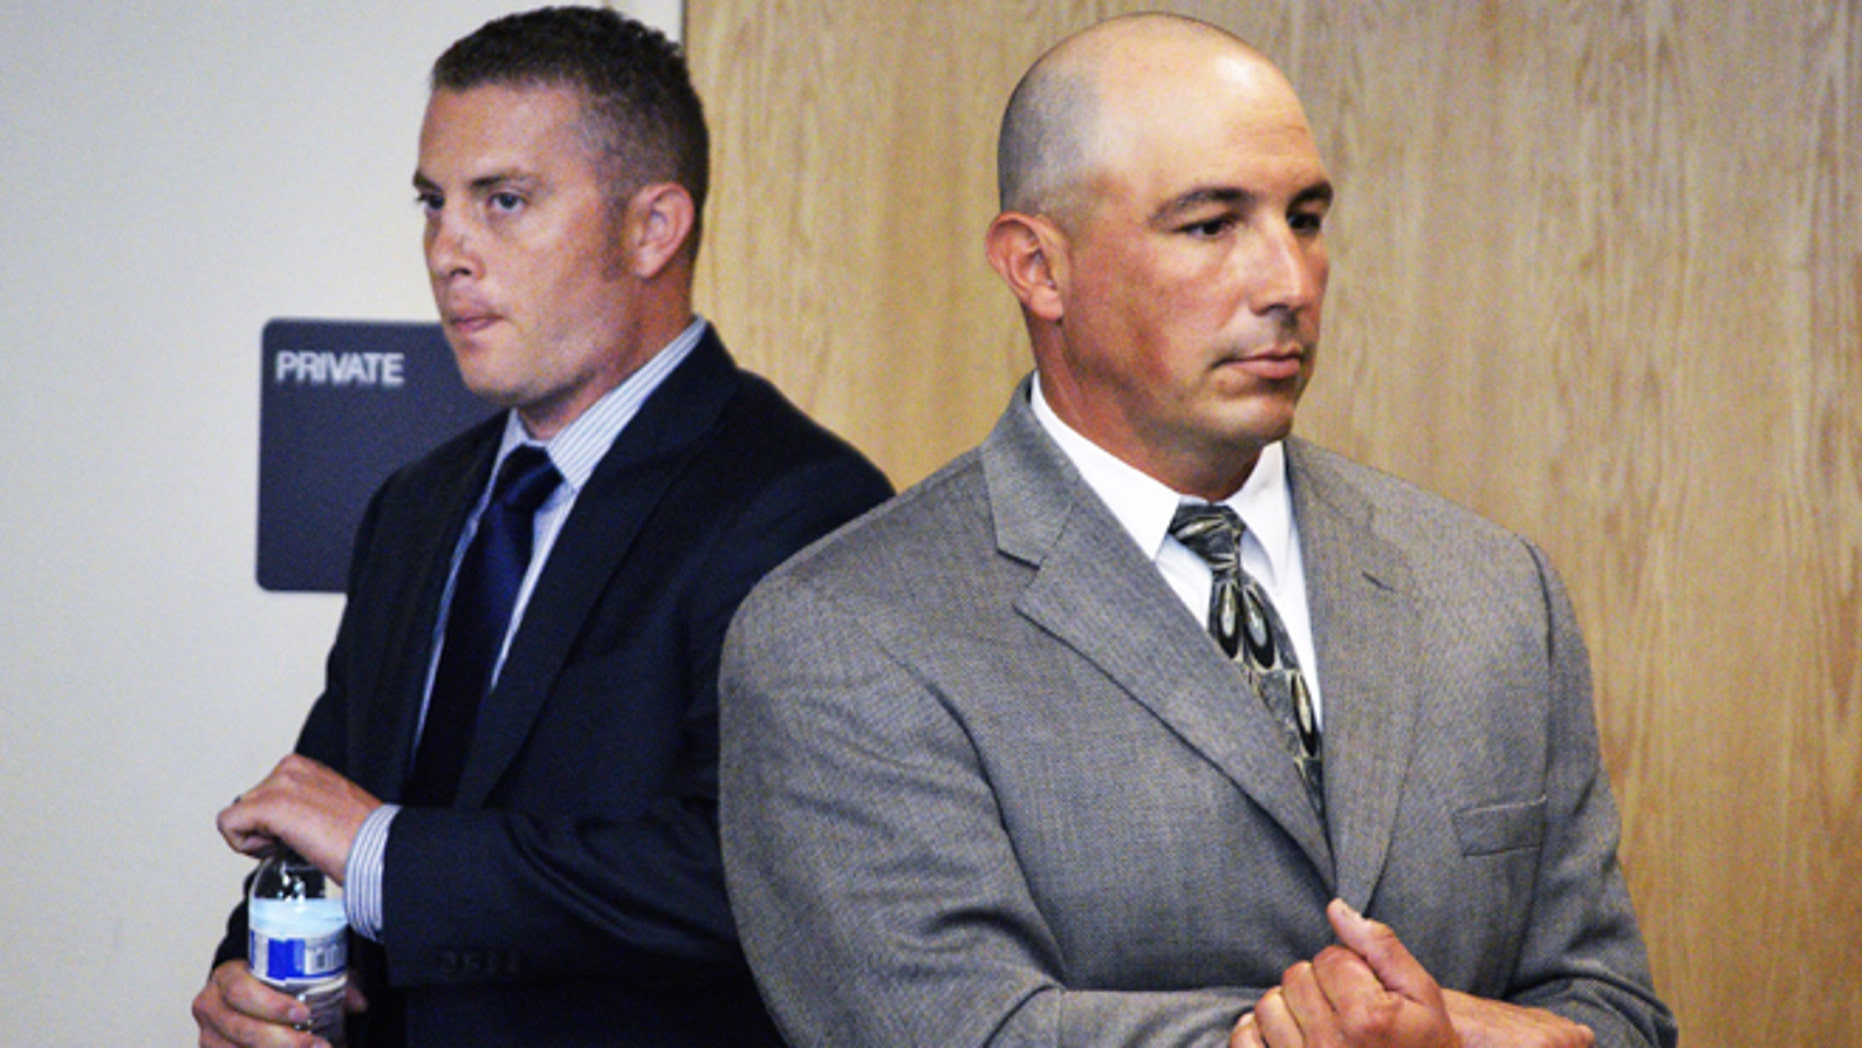 FILE - In a Monday, Aug. 3, 2015 file photo, Albuquerque officer Dominique Perez, left, and former Albuquerque Detective Keith Sandy, right, stand up in court at a preliminary hearing in  Albuquerque, N.M. Pro Tem Judge Neil Candelaria is scheduled Monday, Aug. 17, 2015, to hear more testimony in a preliminary hearing for Perez and Sandy. They are facing murder charges for the death of James Boyd, who was shot during a standoff in March 2014 in the Sandia Mountains foothills.  (AP Photo/Russell Contreras, File)